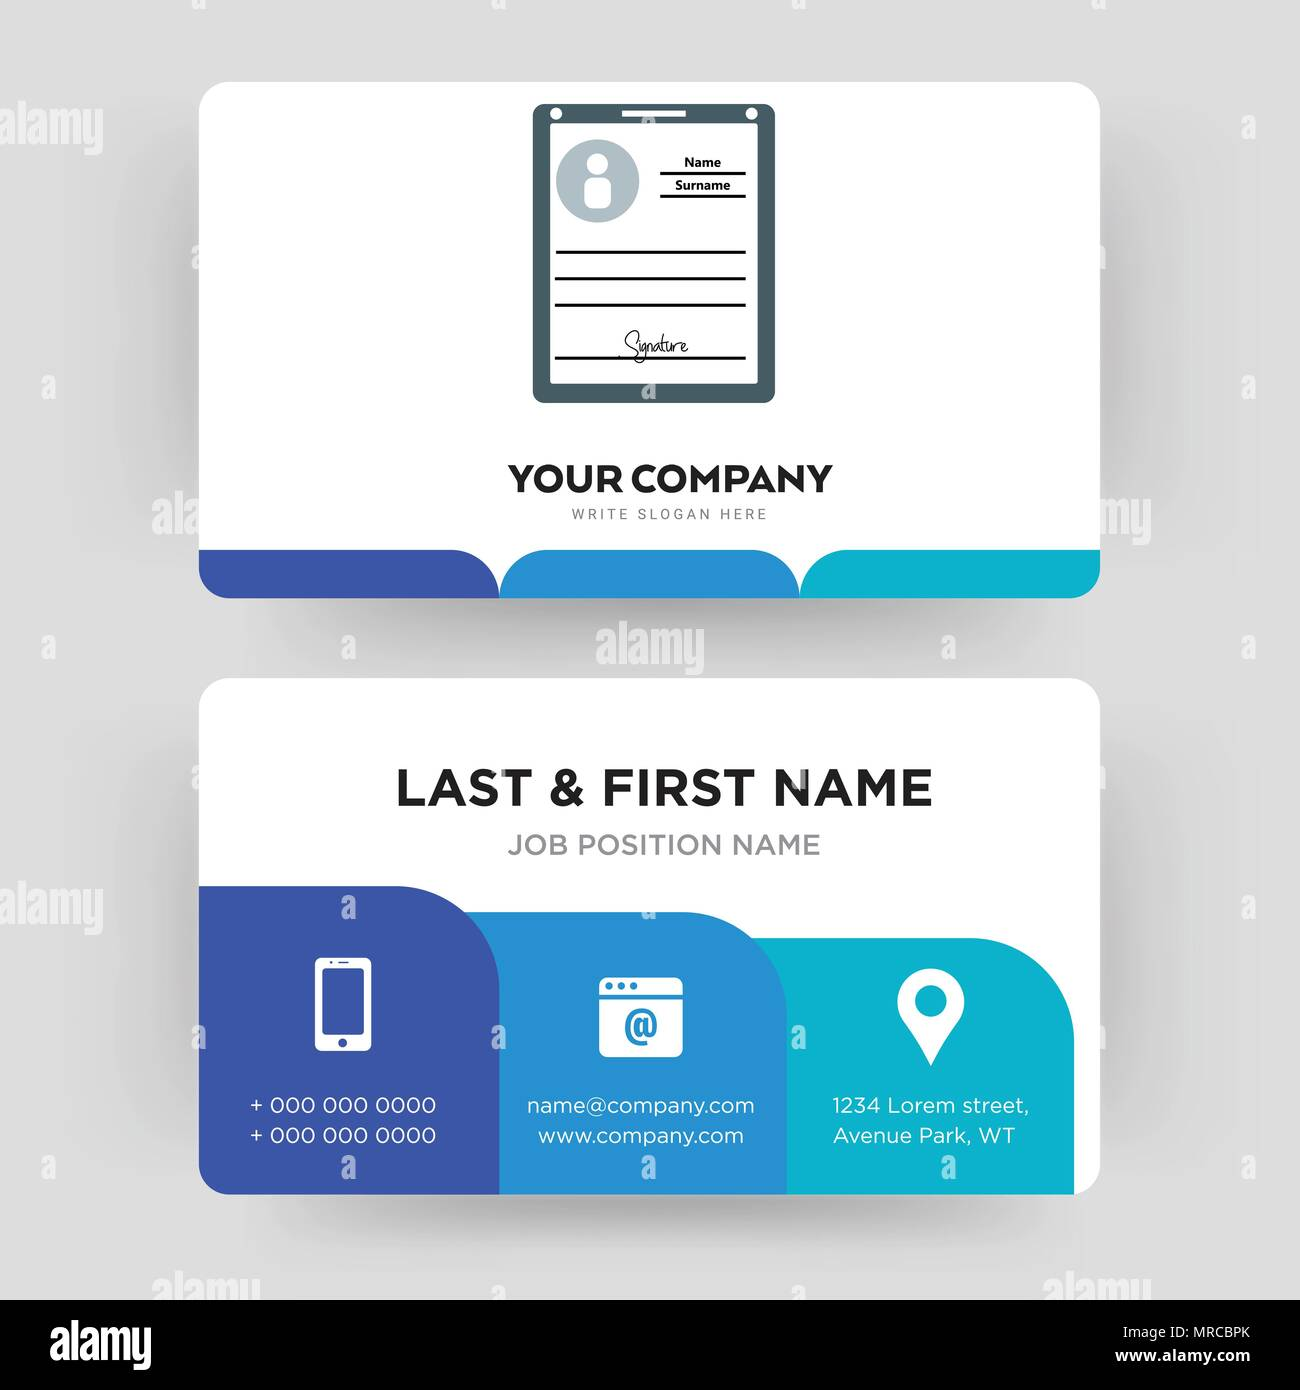 Personal Information Card Template from c8.alamy.com